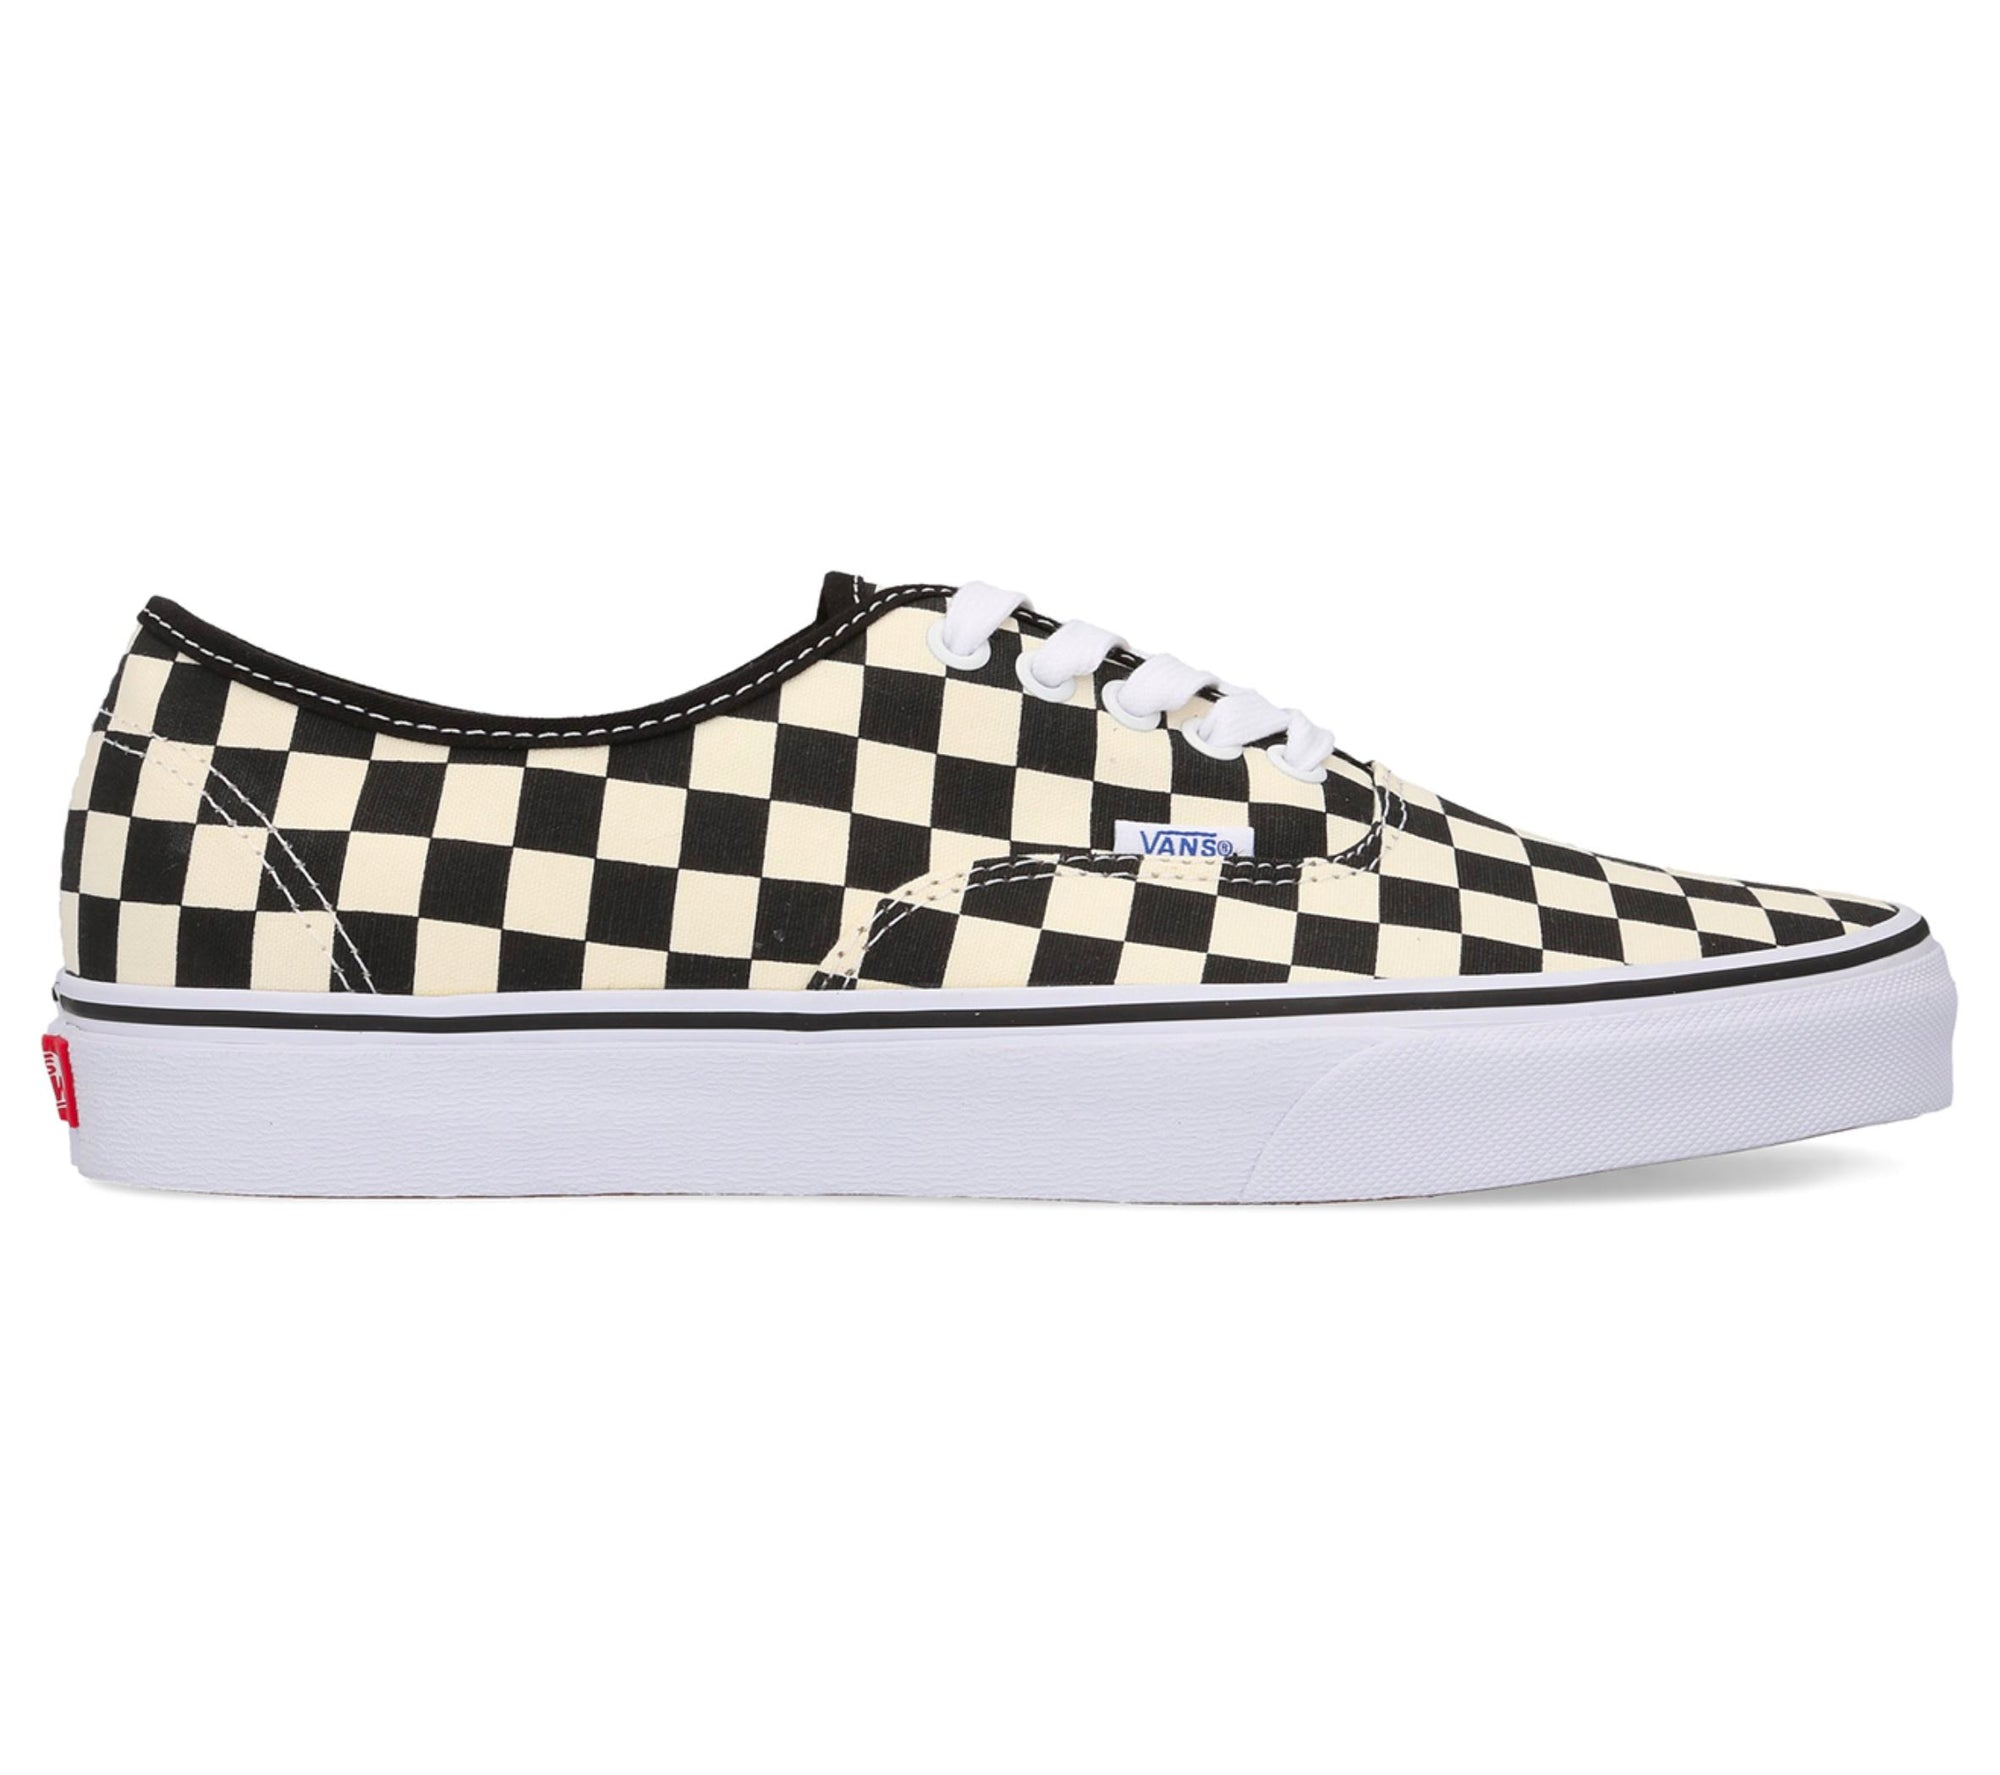 Vans Men's Doheny Checkerboard Shoes - Black/Classic White SP-Footwear-Mens Vans